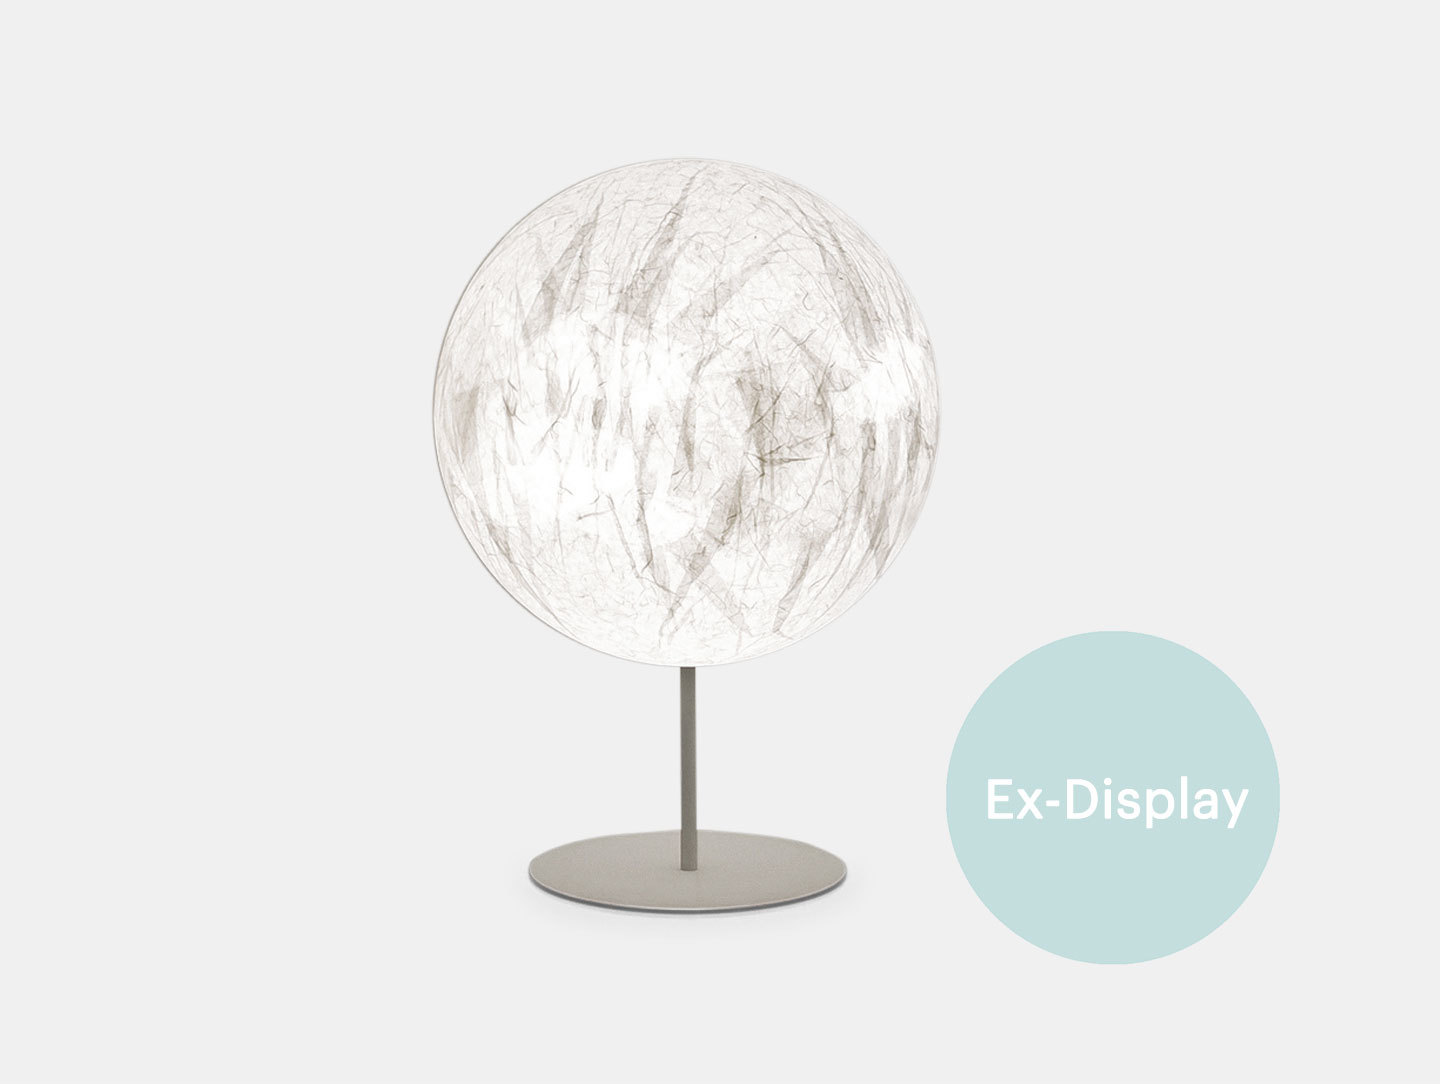 Moon Floor Lamp / 40% off in our Summer Sale at £550 image 1